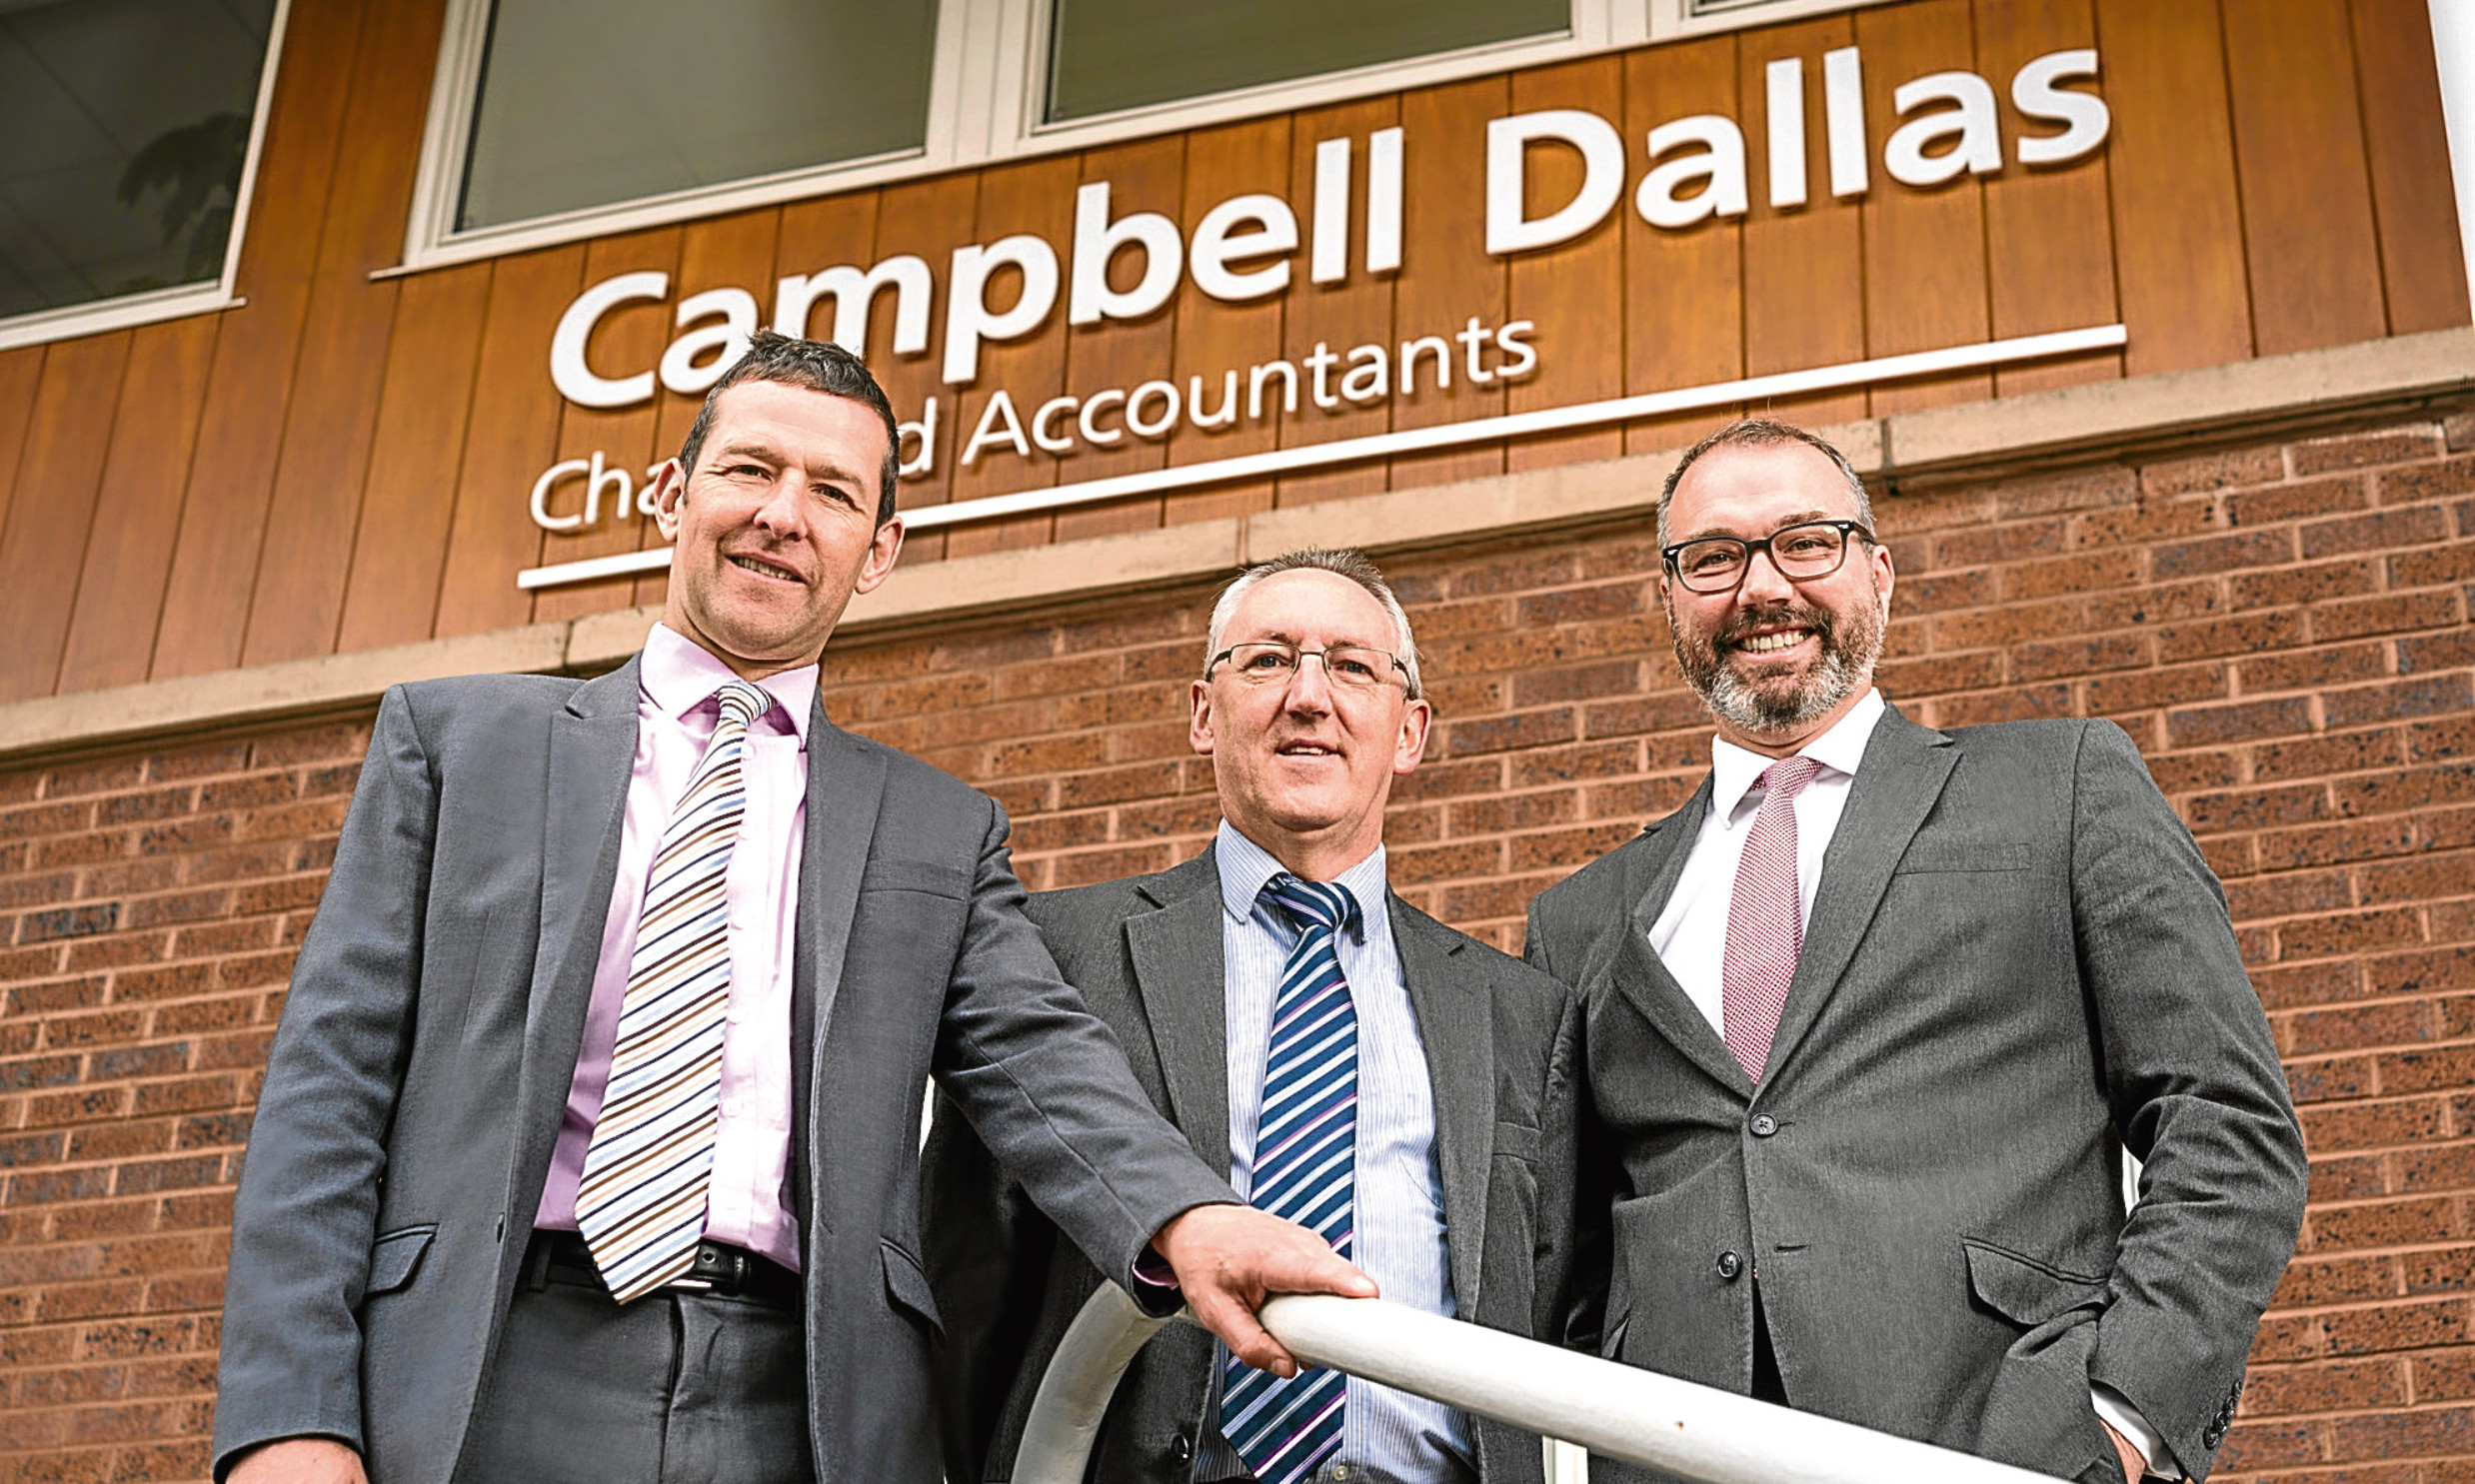 Andy Ritchie, Charlie Carnegie and Chris Horne outside Campbell Dallas Perth office after finalising the acquisition of Bell & Company.